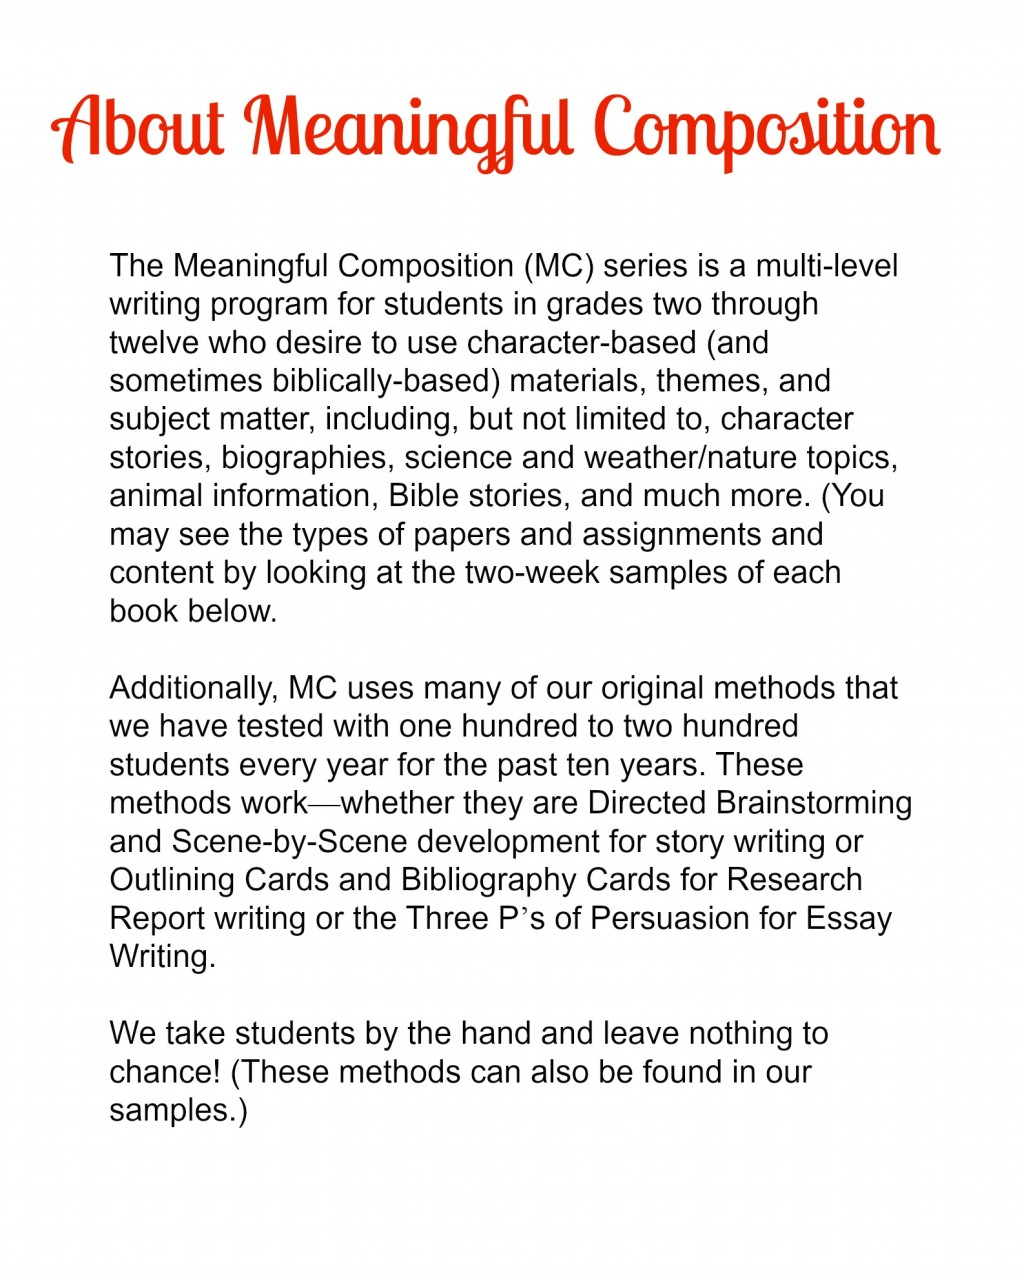 022 Examples Of Persuasive Essays Expository Essay Introductions Creative Writing Course Paragraph On Bullying About Meaningful Compos Cyber How To Prevent Five Excellent For Fifth Graders Written By 5th 3rd Grade Large